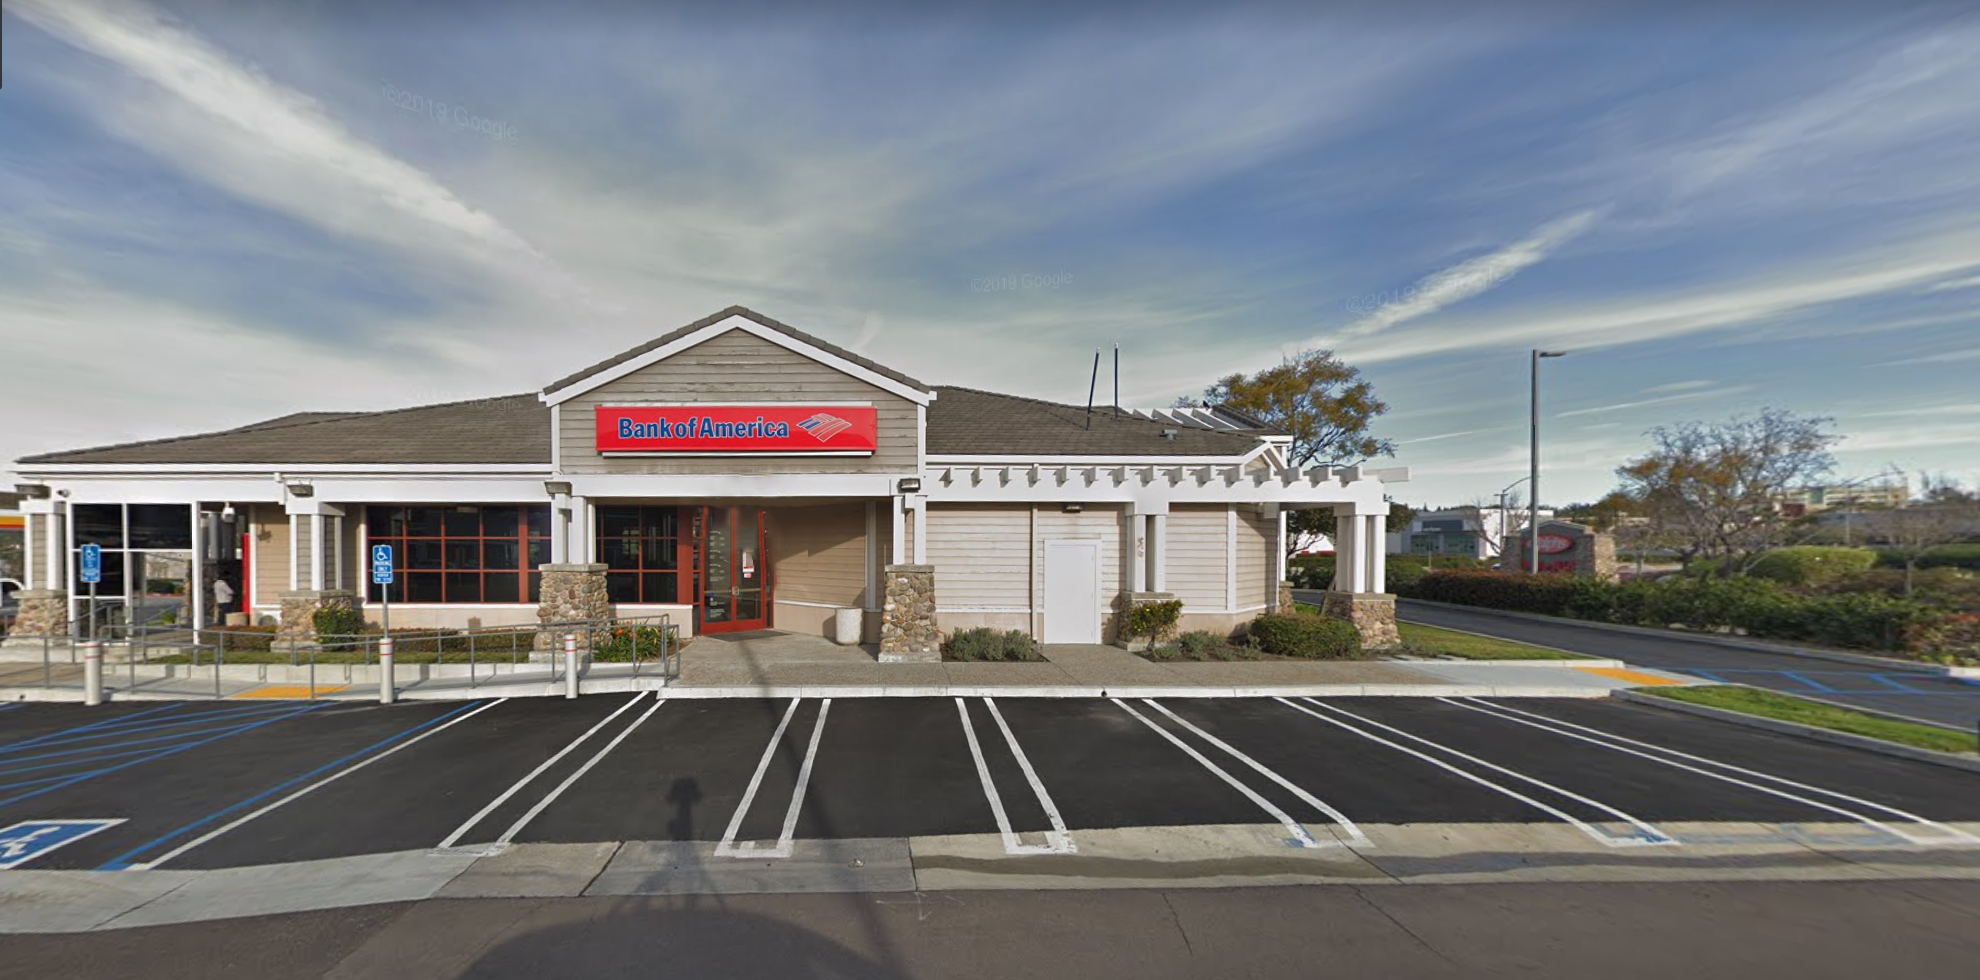 Bank of America financial center with drive-thru ATM | 11855 Carmel Mountain Rd, San Diego, CA 92128